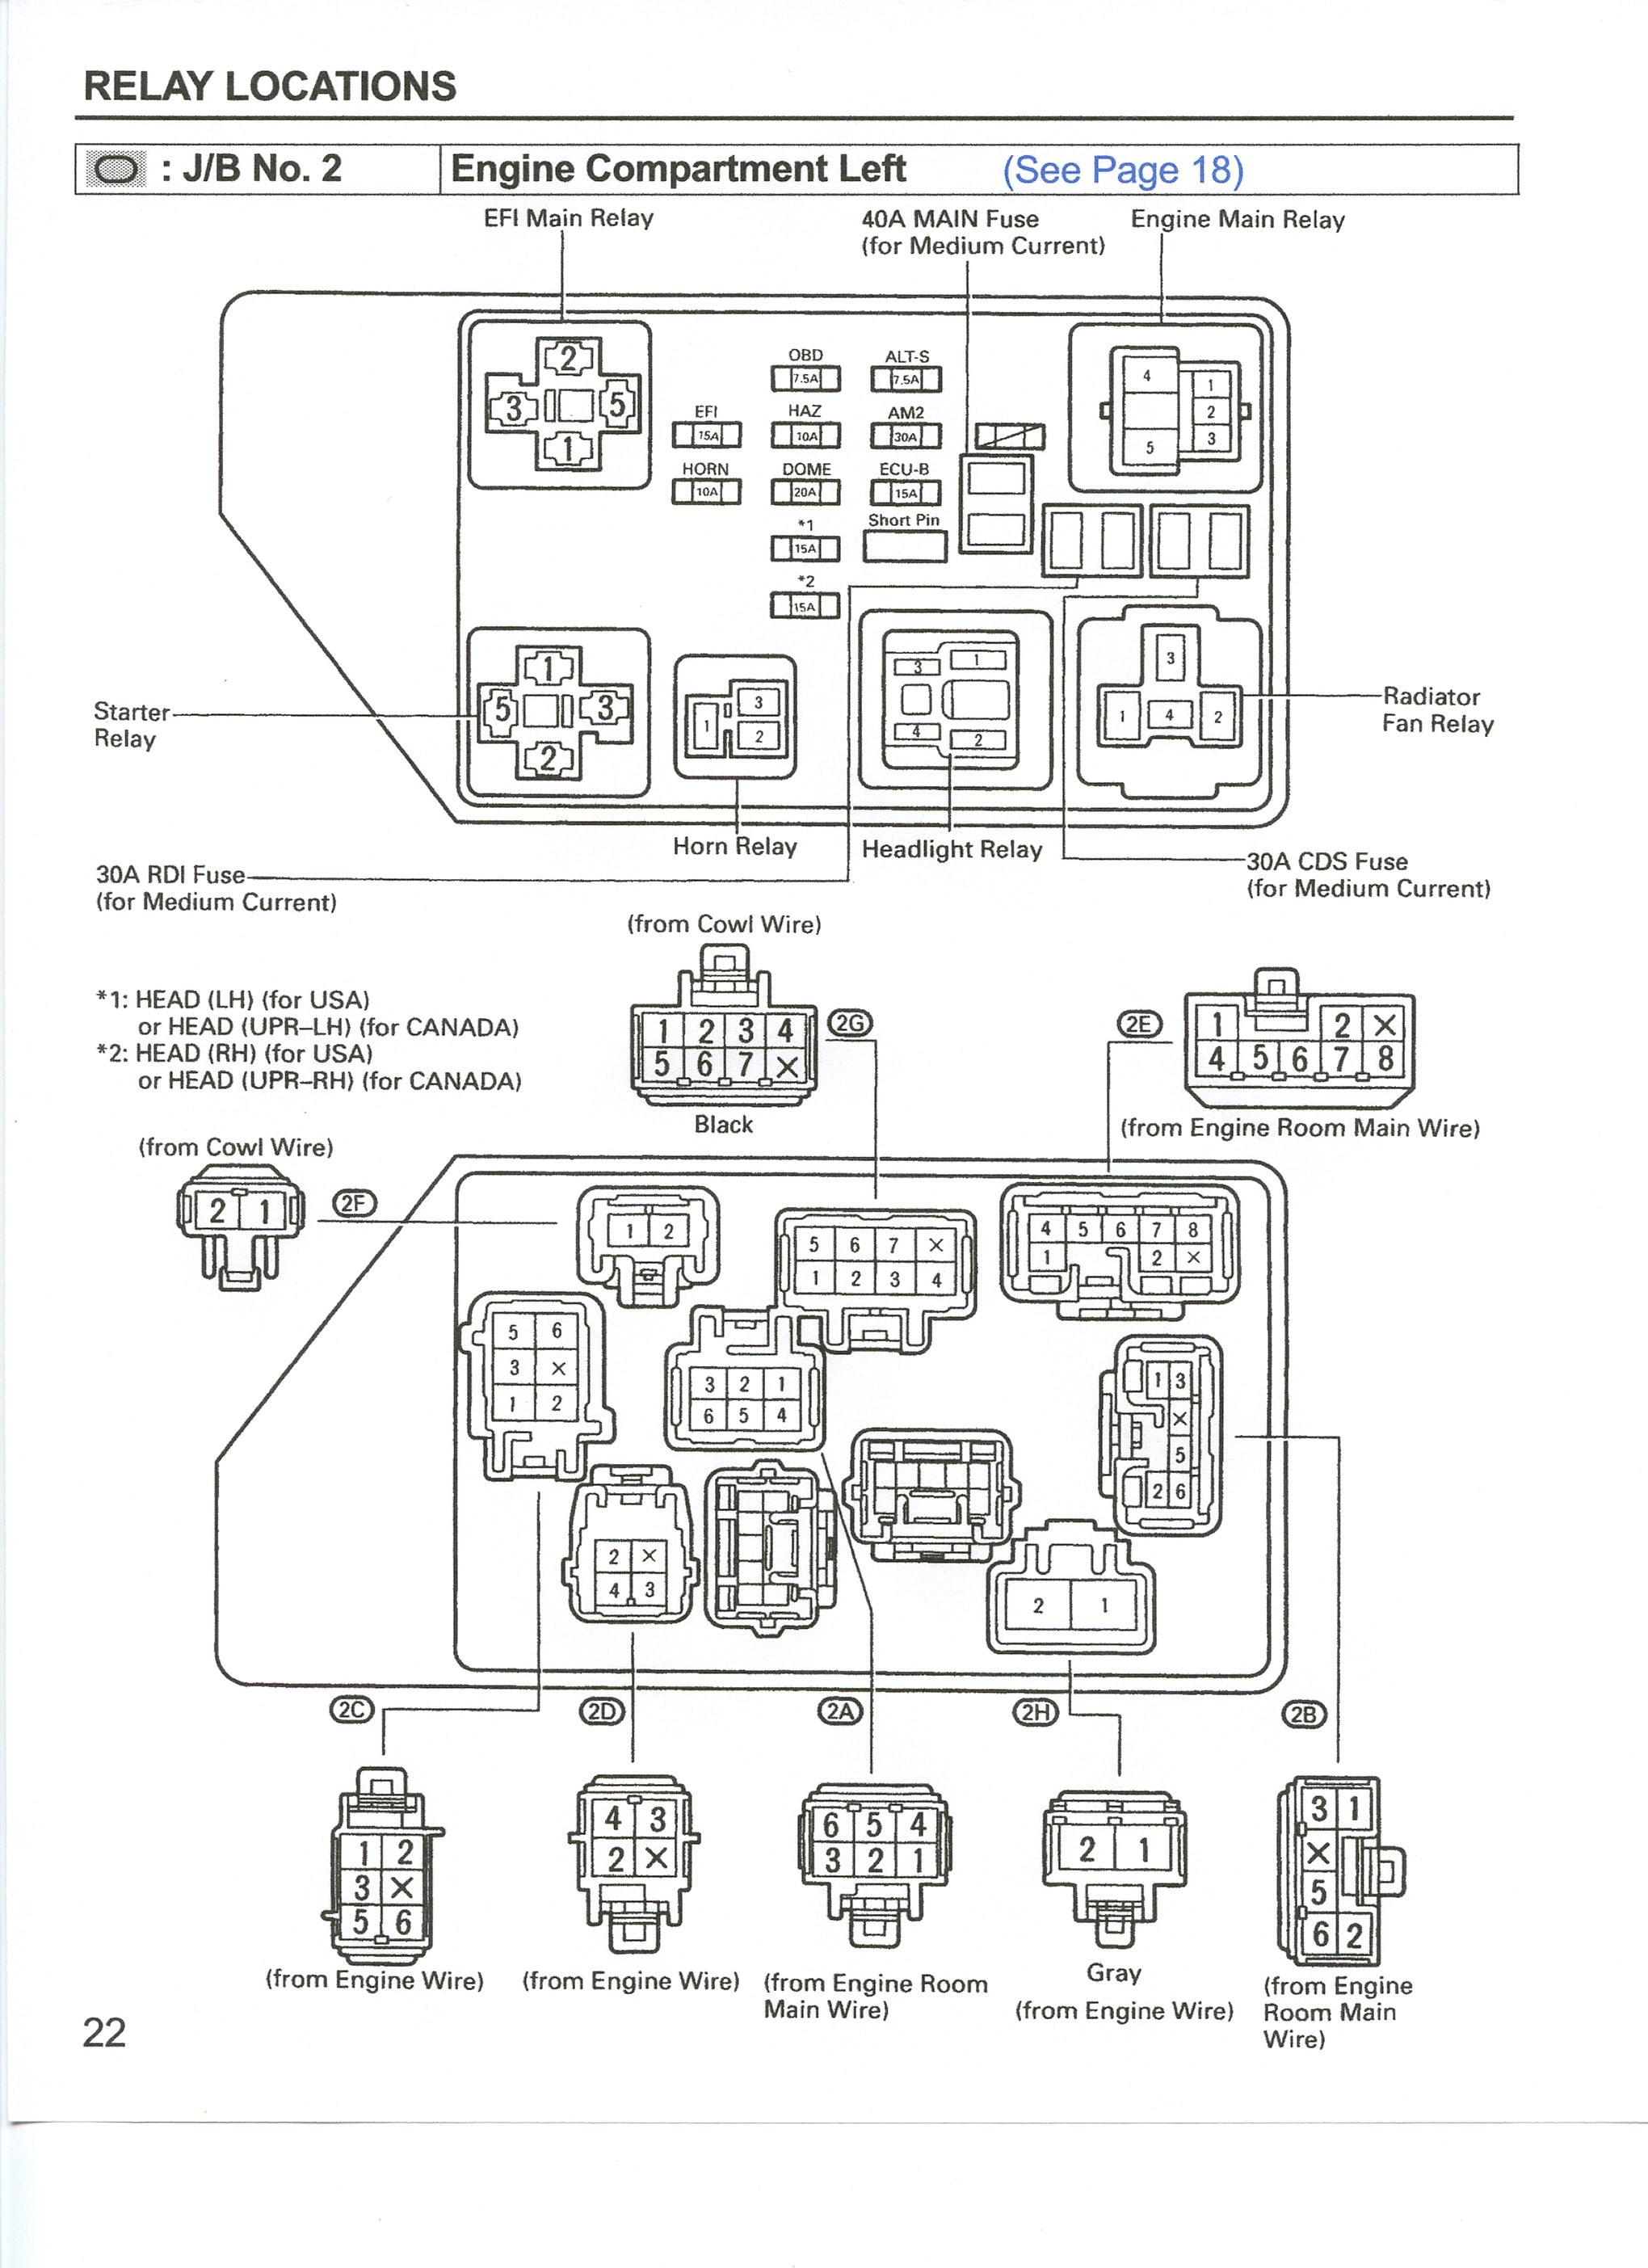 2001 Toyota Echo Fuse Diagrams Residential Electrical Symbols \u2022 Toyota  Echo Fuse Box Flasher Toyota